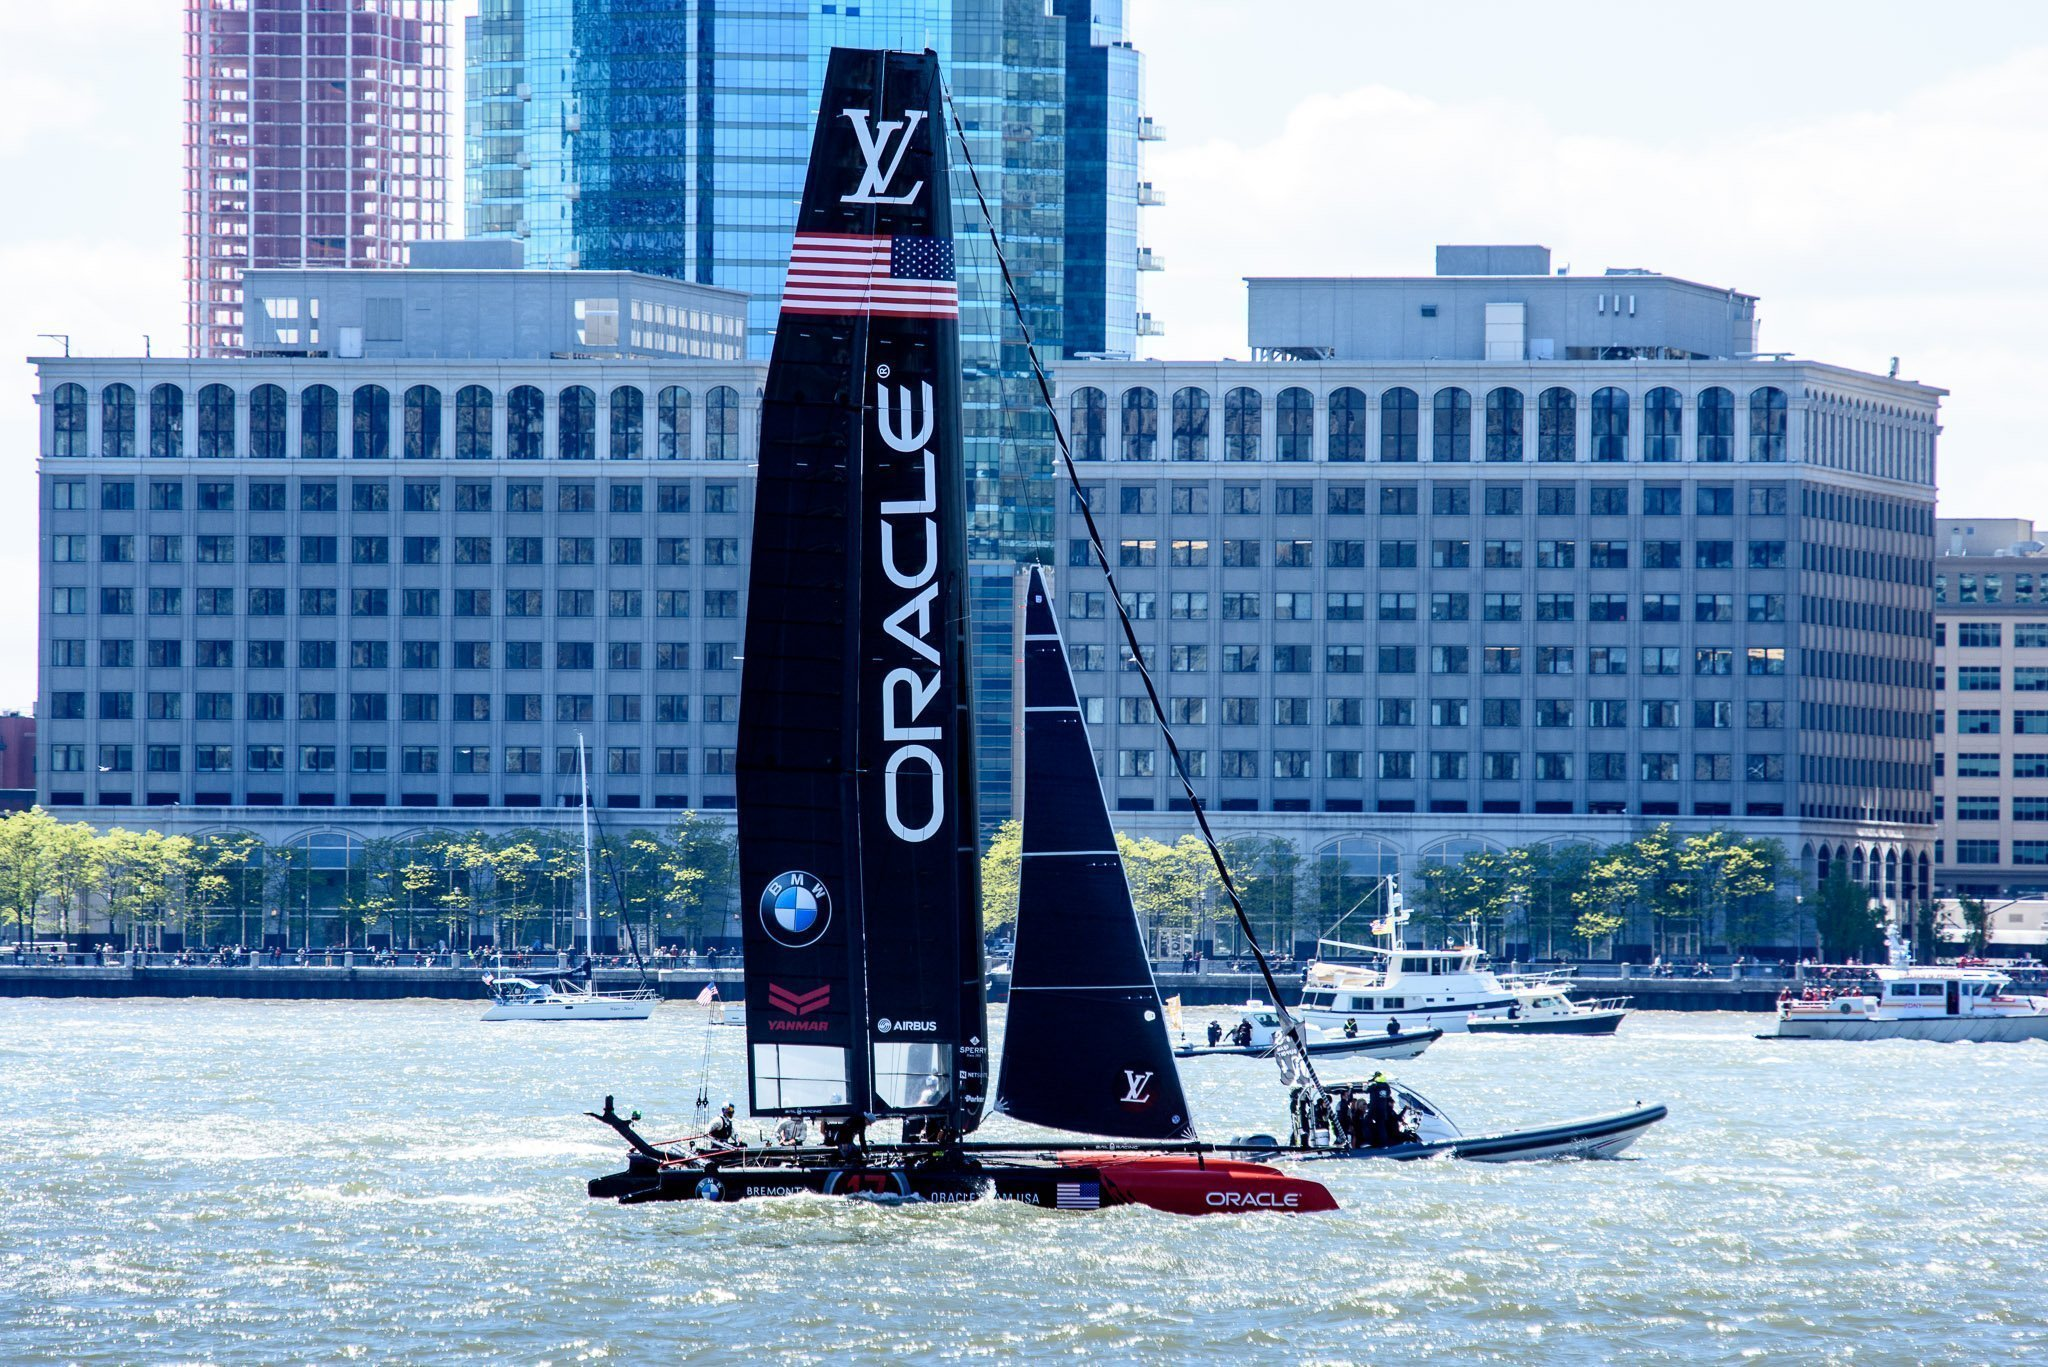 Oracle France America's Cup